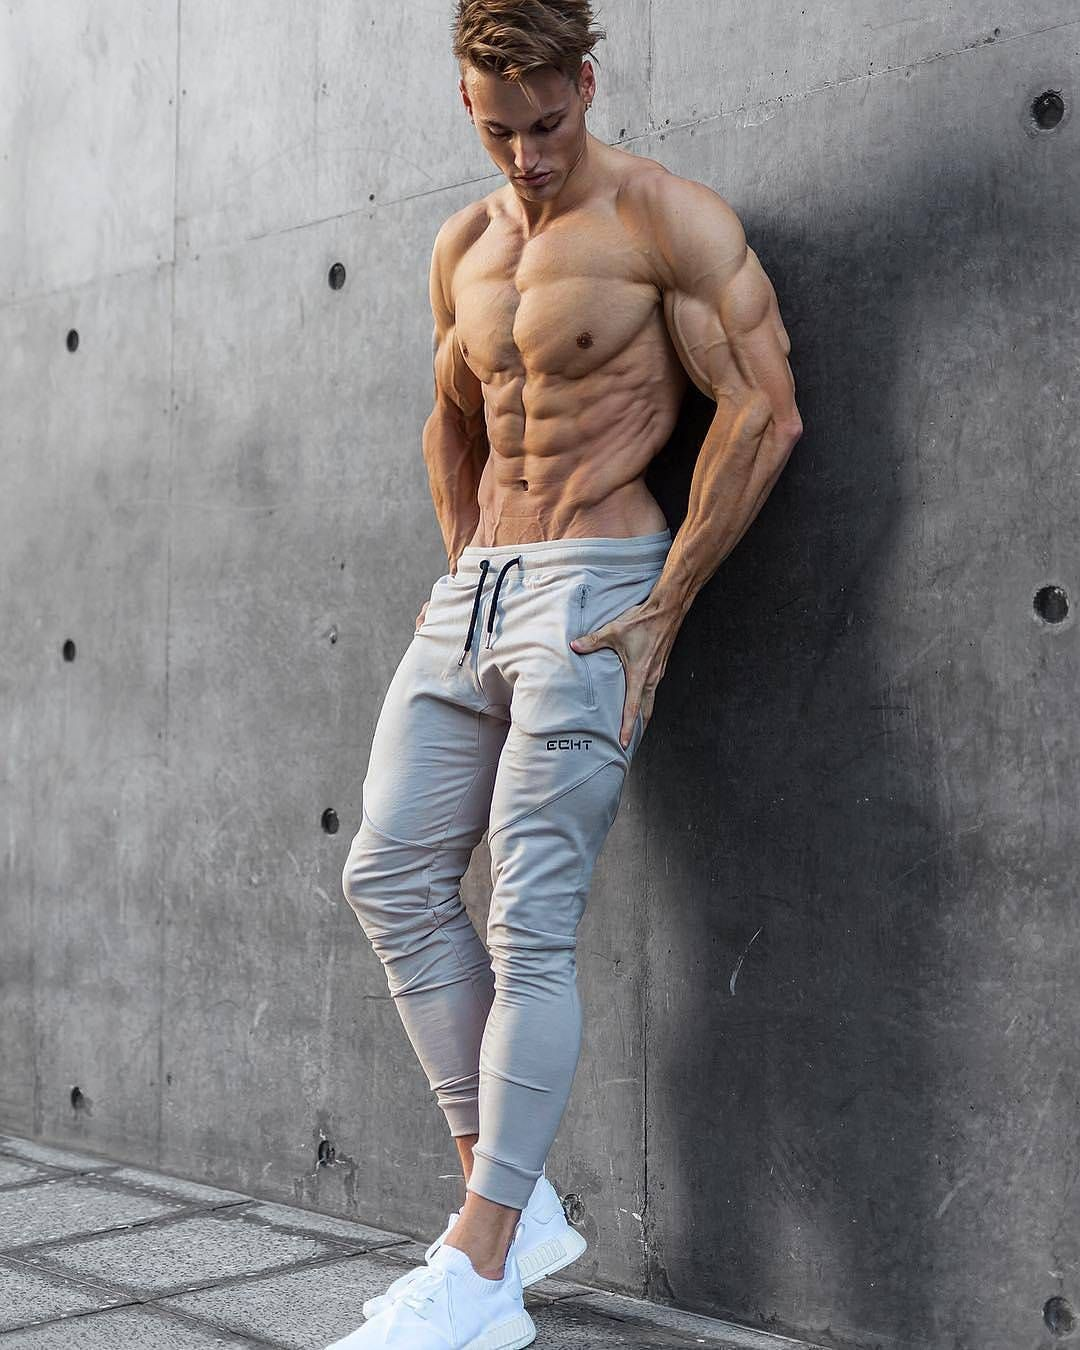 Share And Tag Friend Awesome Physiue And Triceps Goals